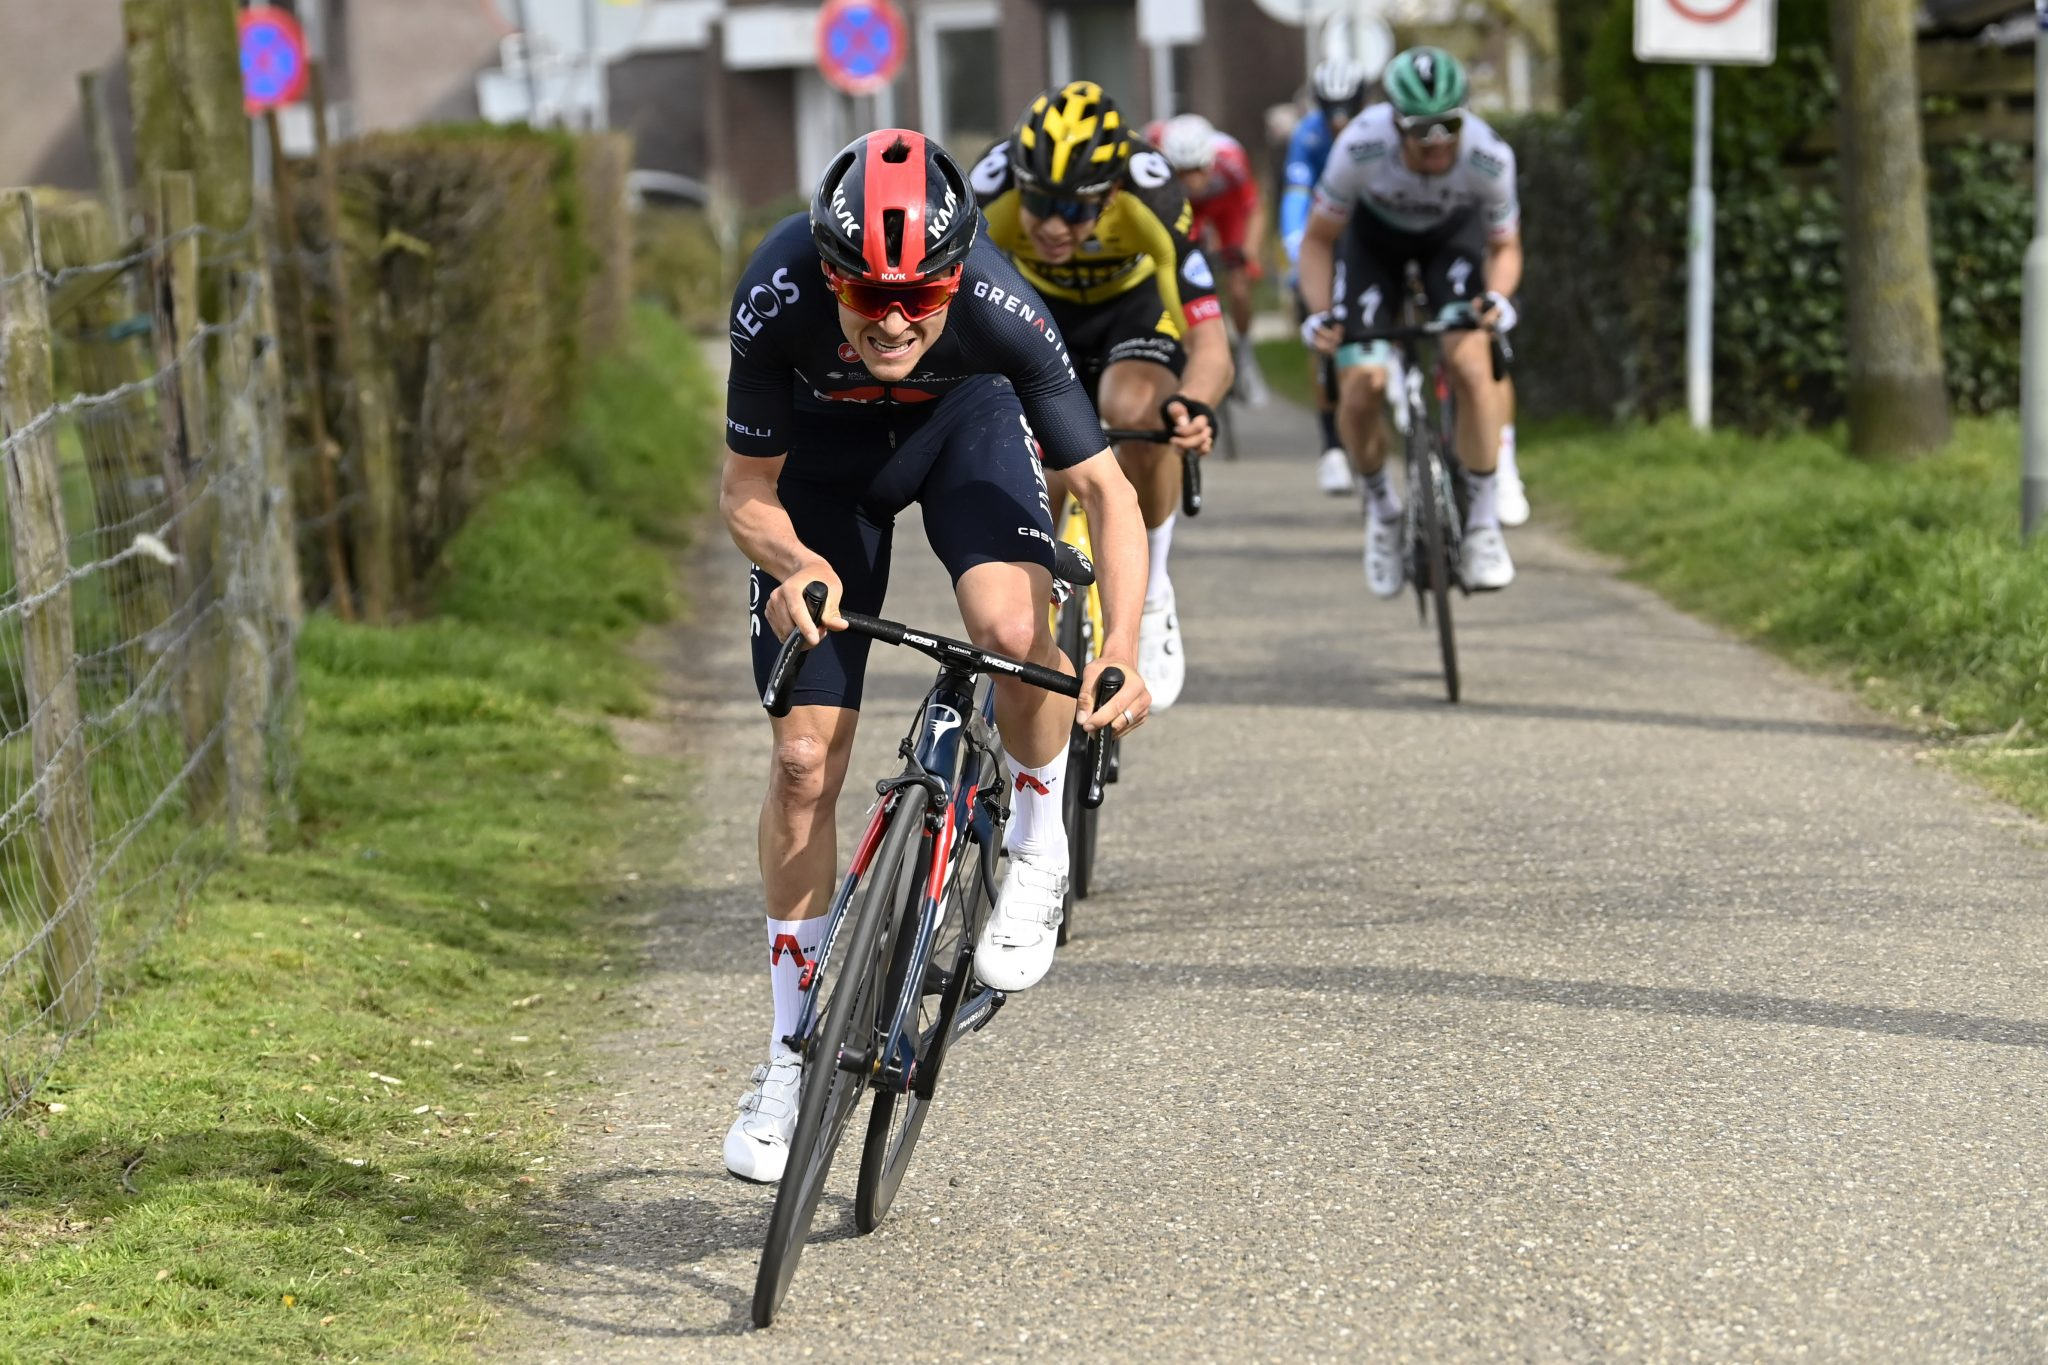 TRY THESE 2 FREE CYCLING WORKOUTS FOR INCREASING ANAEROBIC CAPACITY